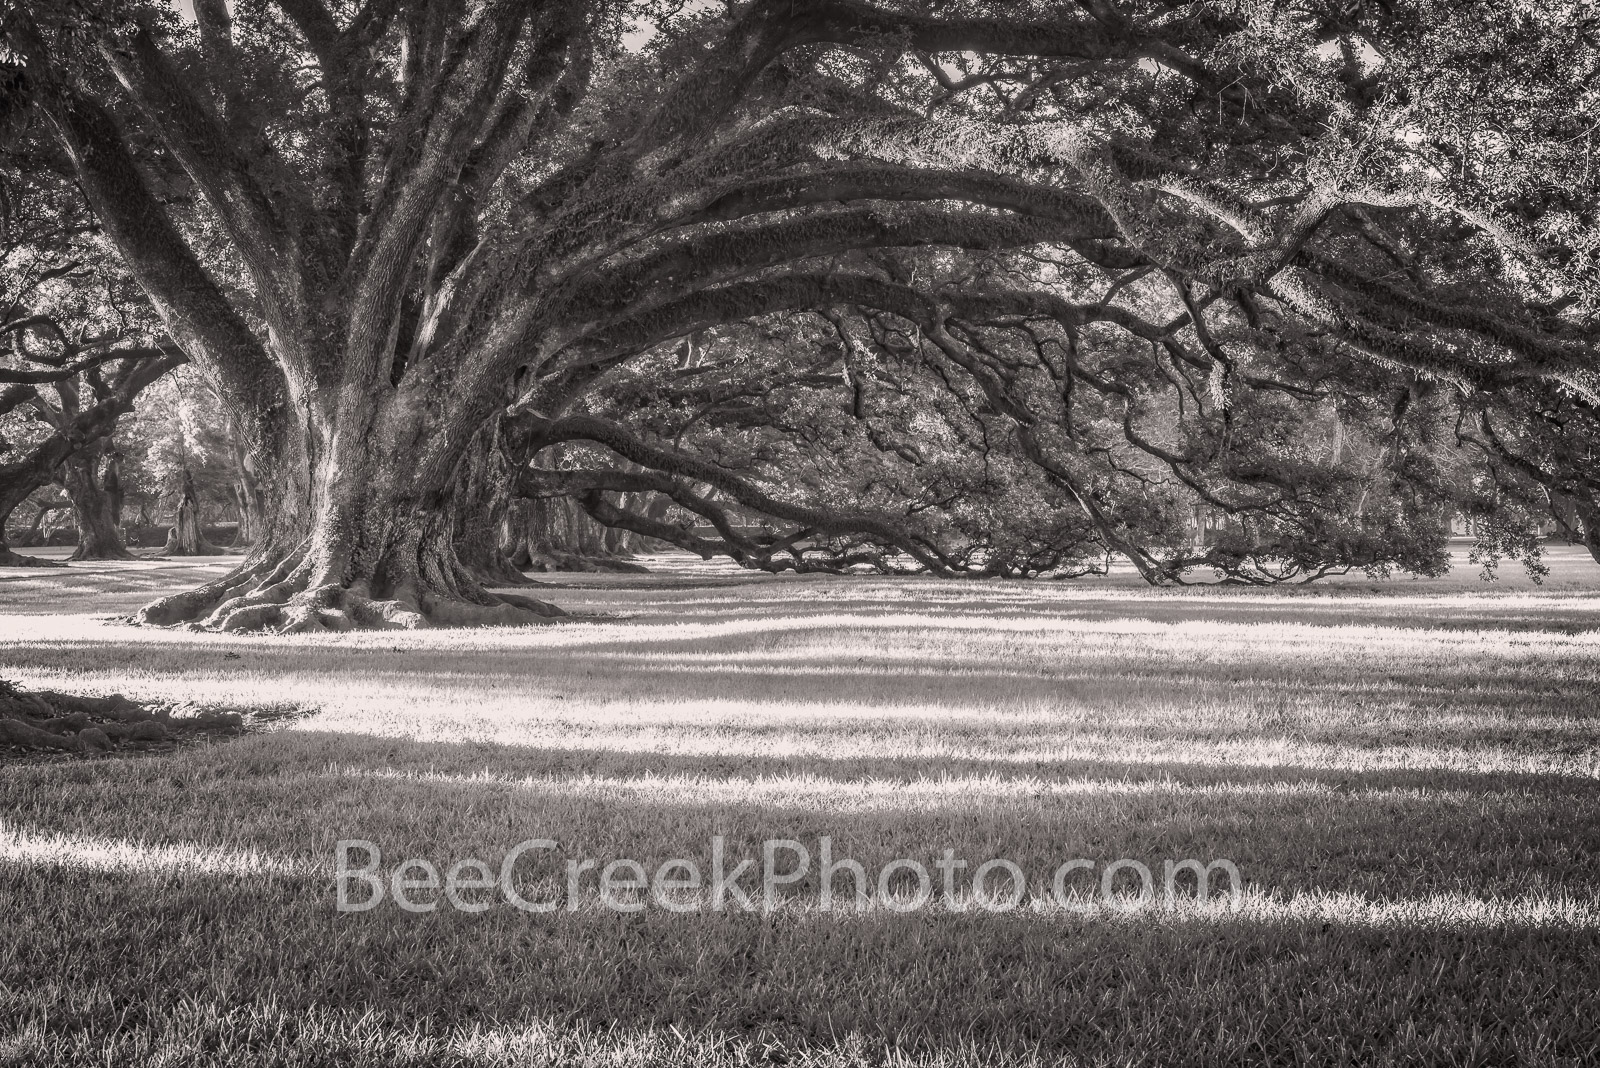 Oak Alley Live Oak in B W - The Oak Alley live oaks are over 300 years old and were here before the plantation and mansion even...